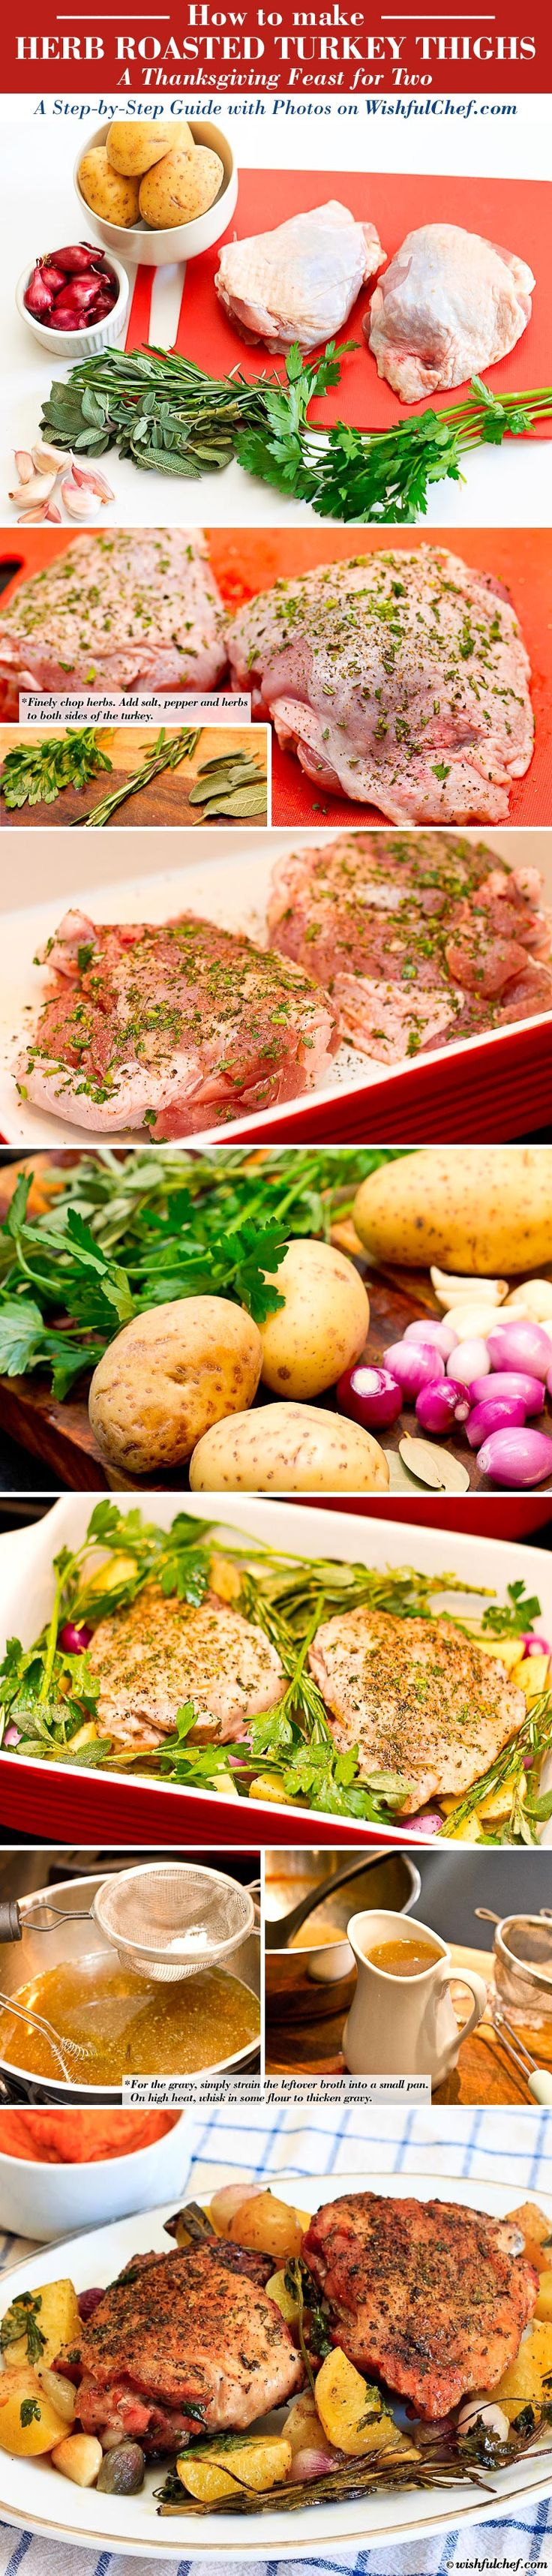 Herb Roasted Turkey Thighs  - A Thanksgiving Feast for Two // wishfulchef.com